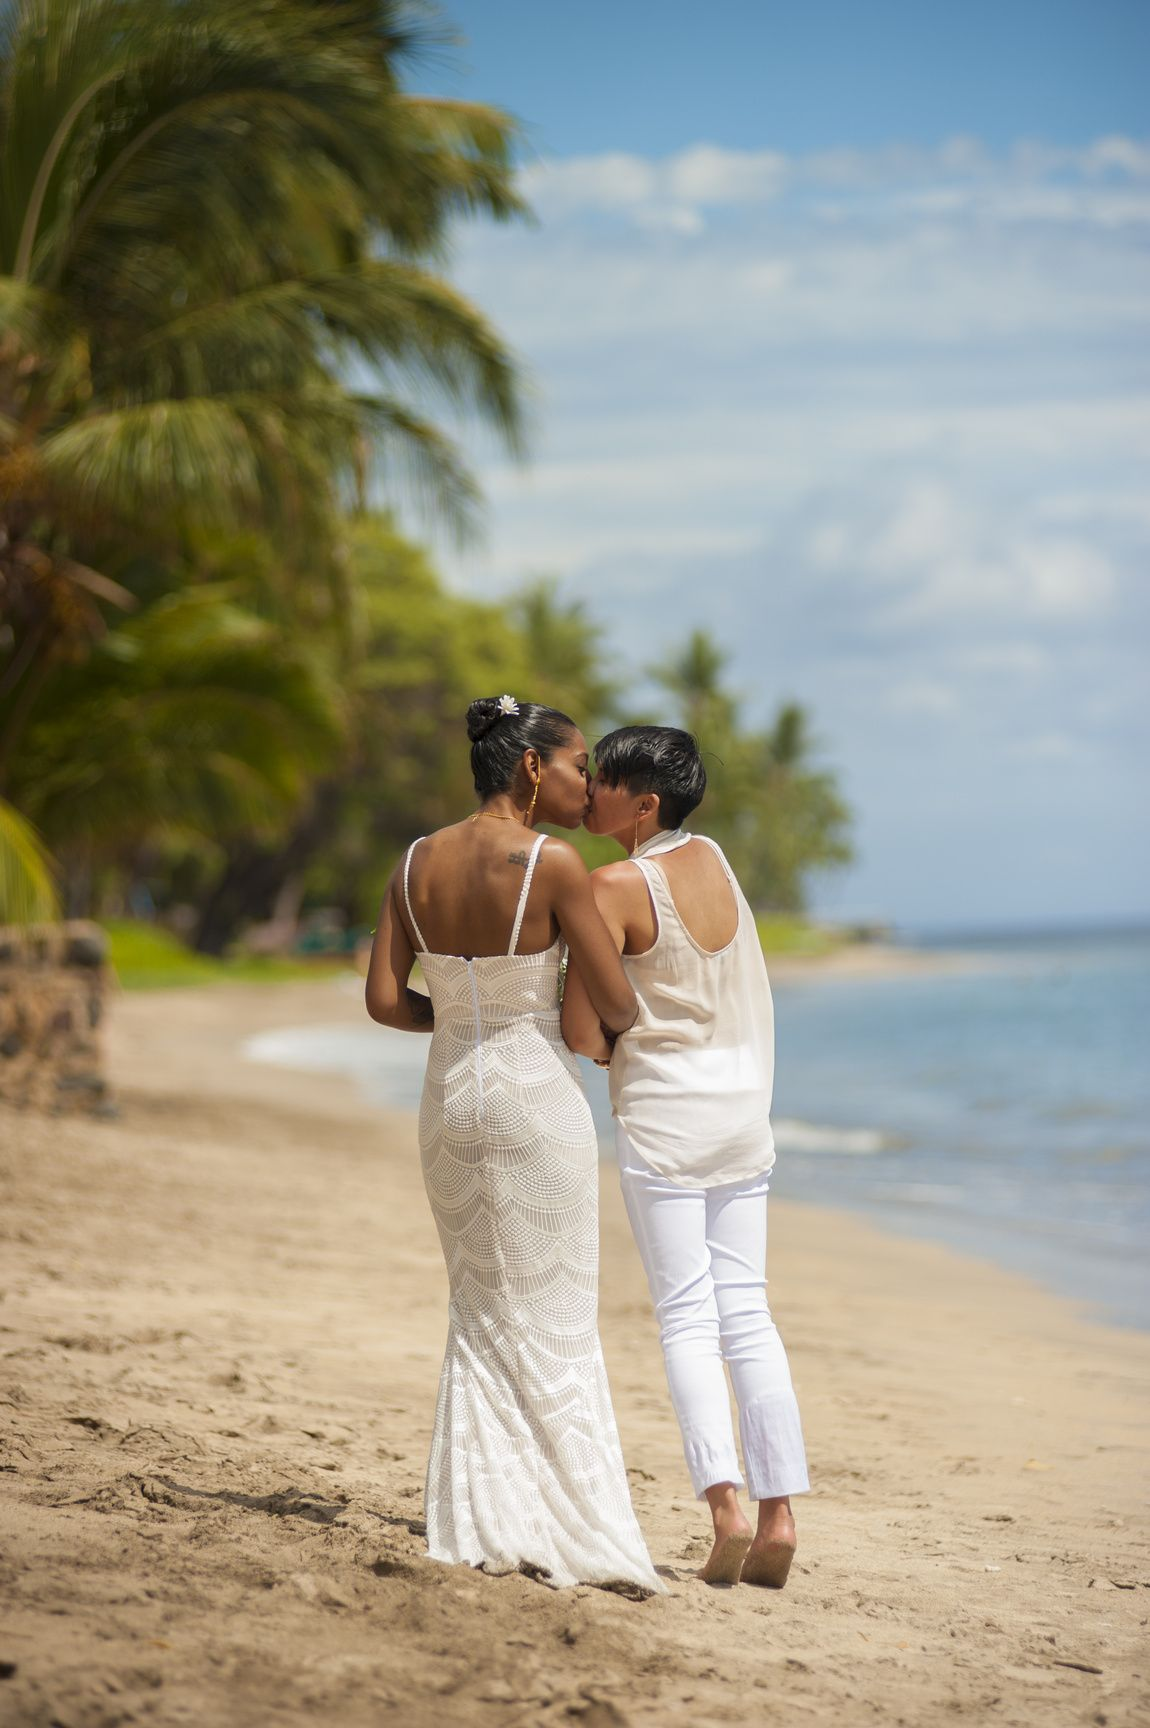 Maui Wedding Walk Along The Beach After A Ceremony Joedalessandro